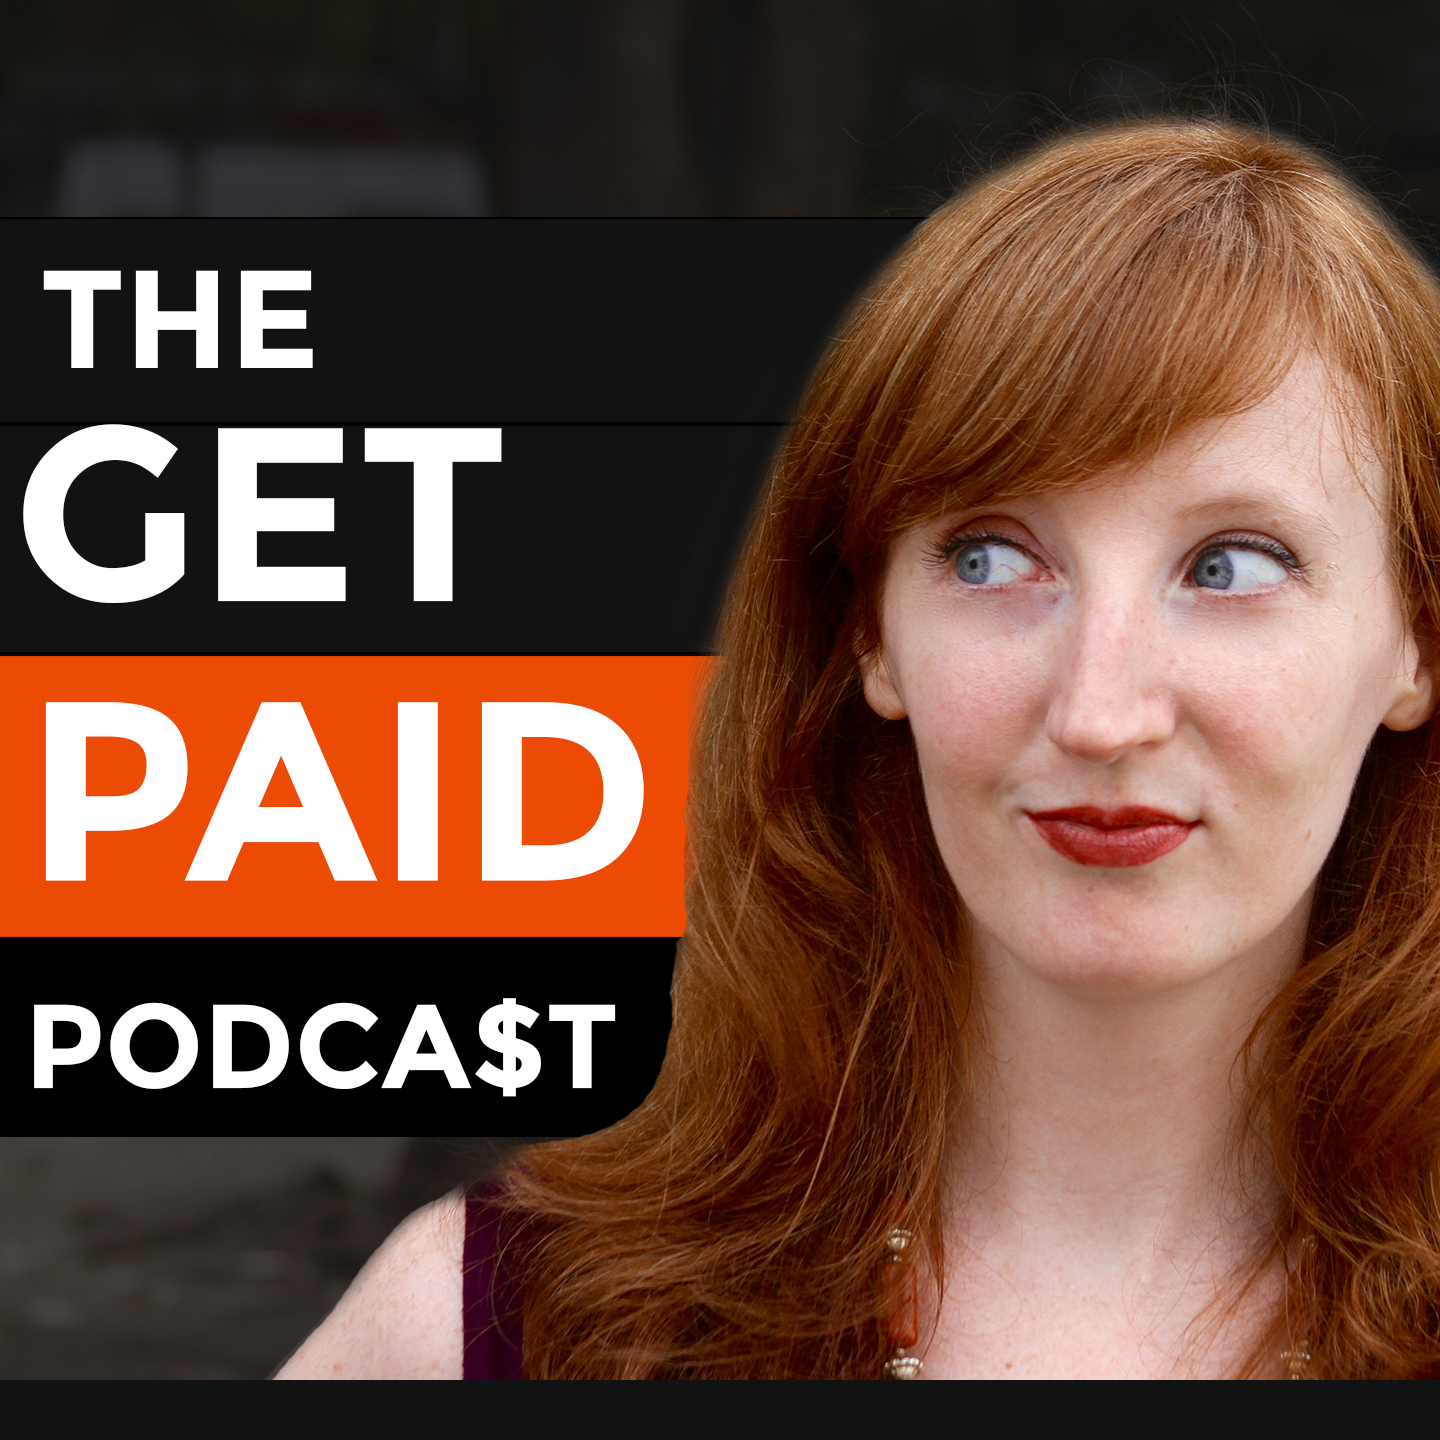 The Get Paid Podcast with Claire Pelletreau